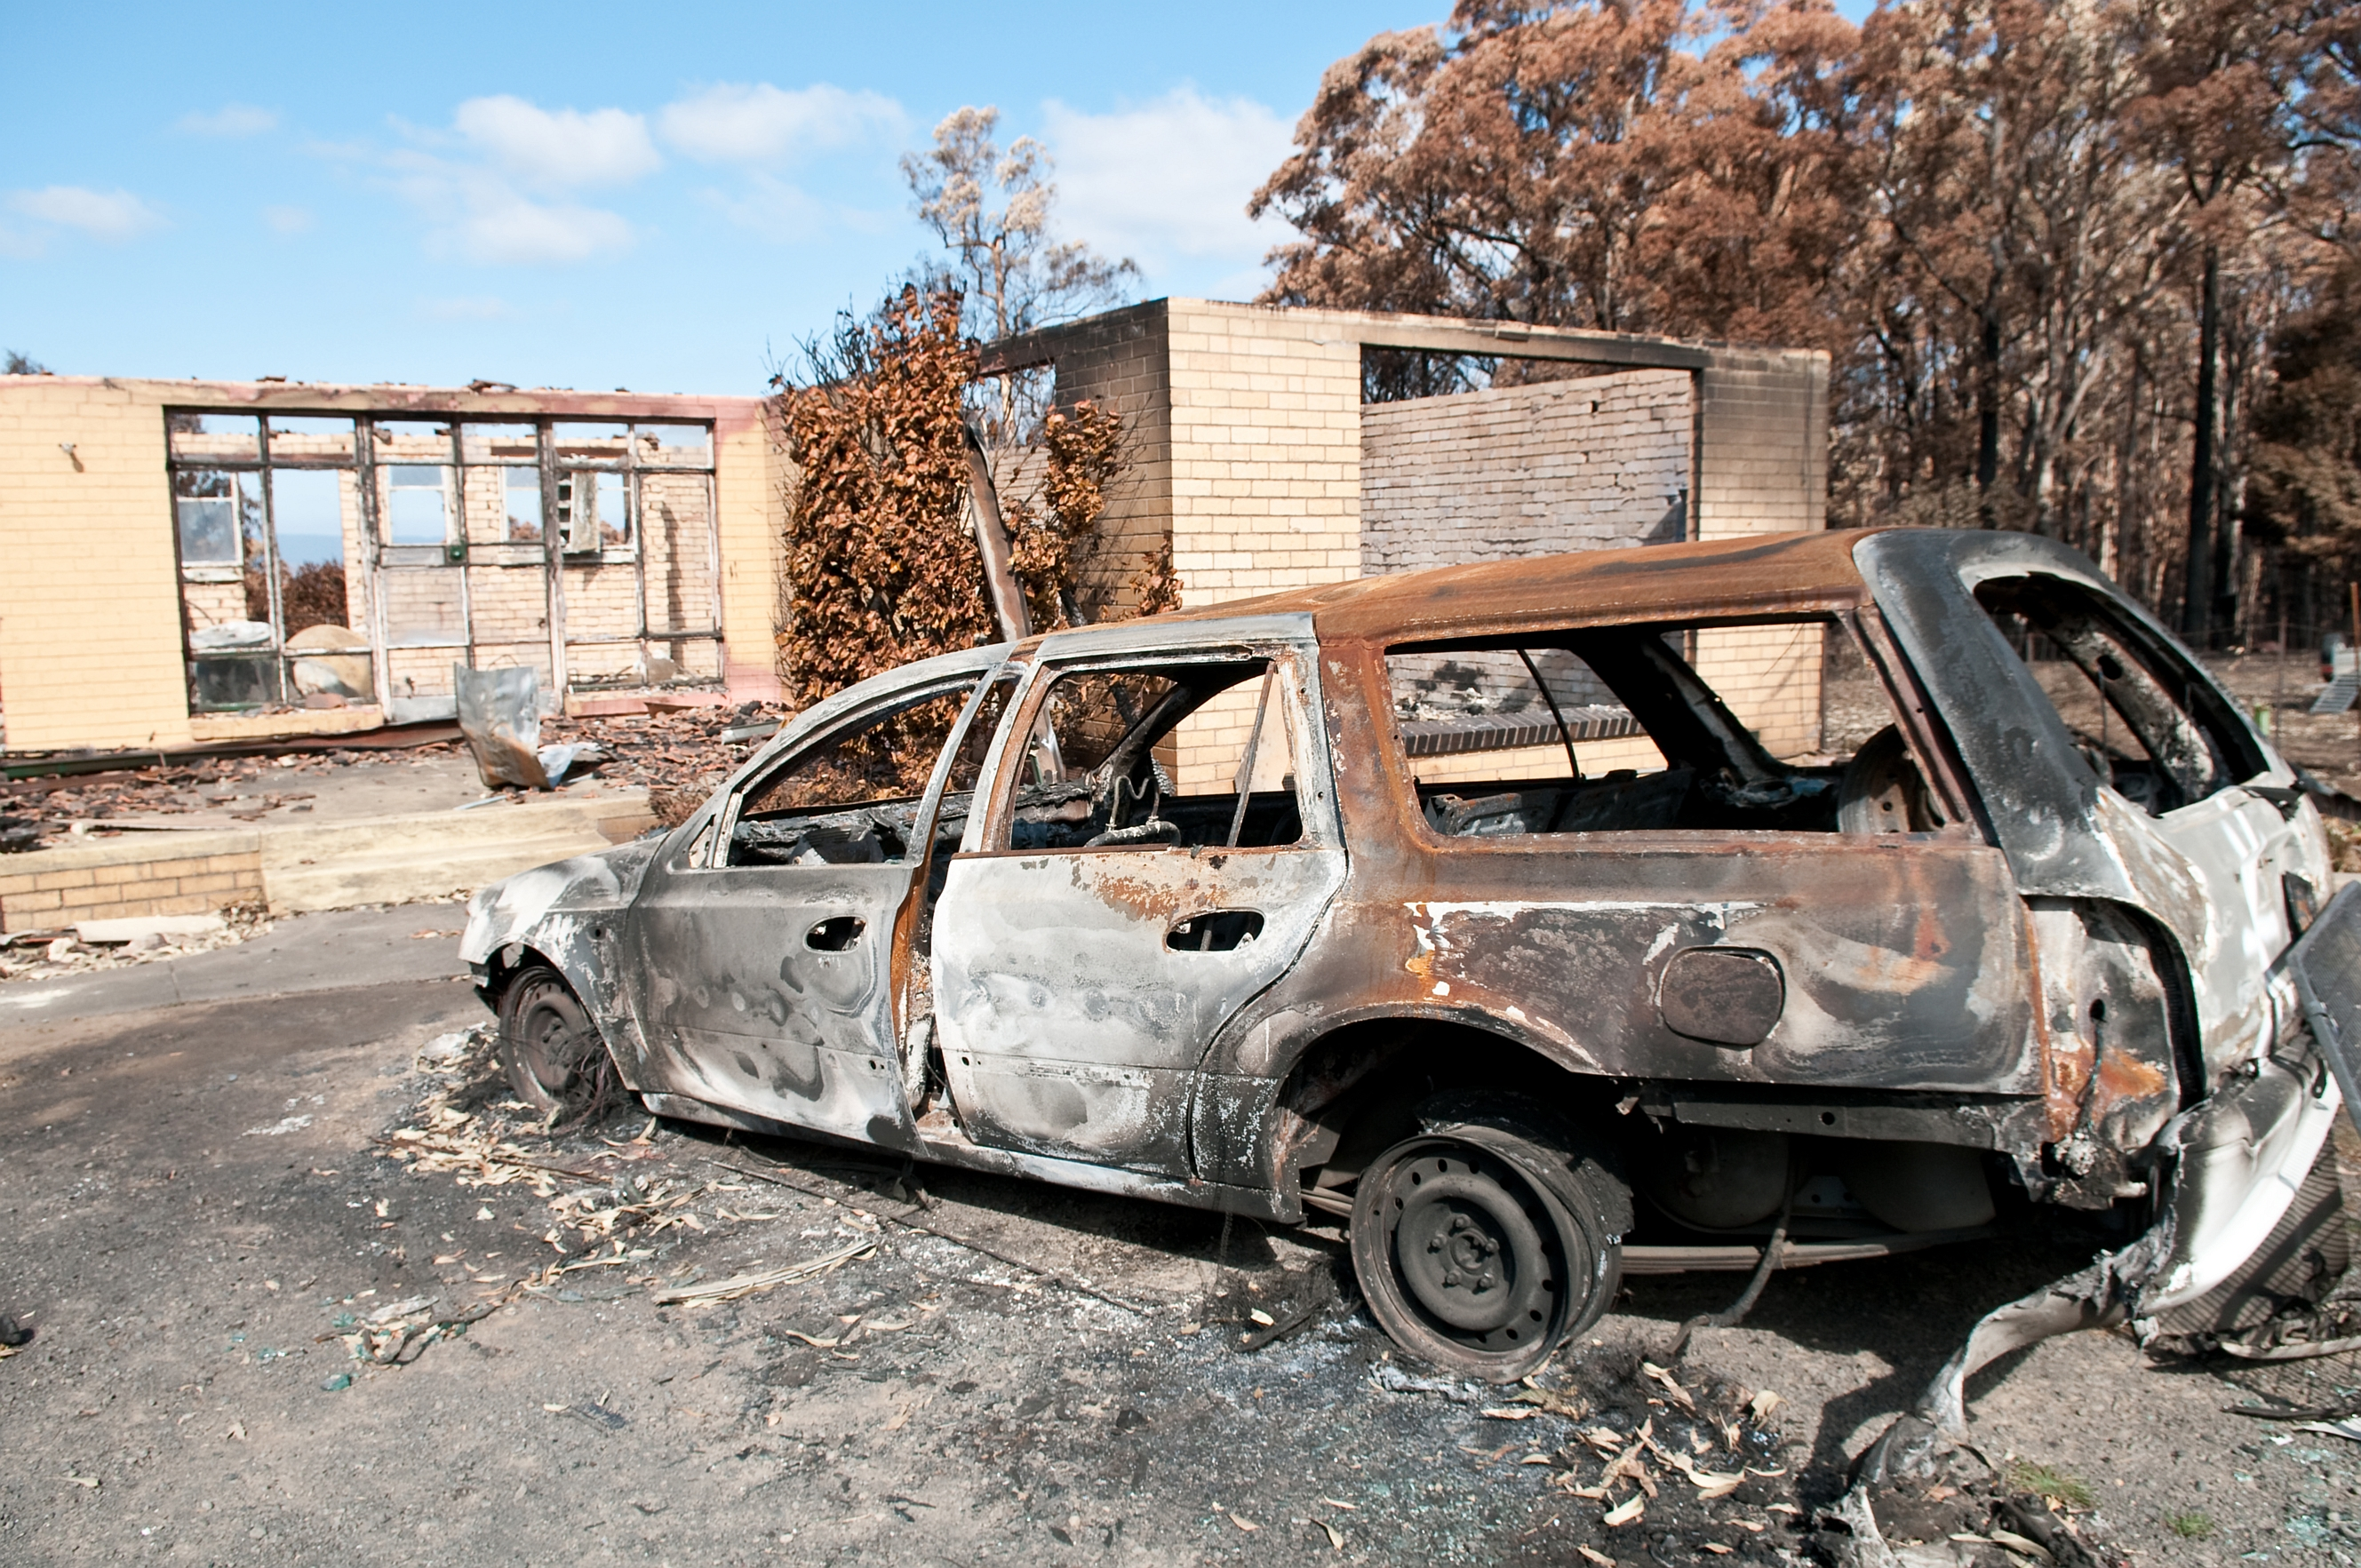 A burnt-out station wagon in front of a burnt-out dwelling, with only some walls still standing